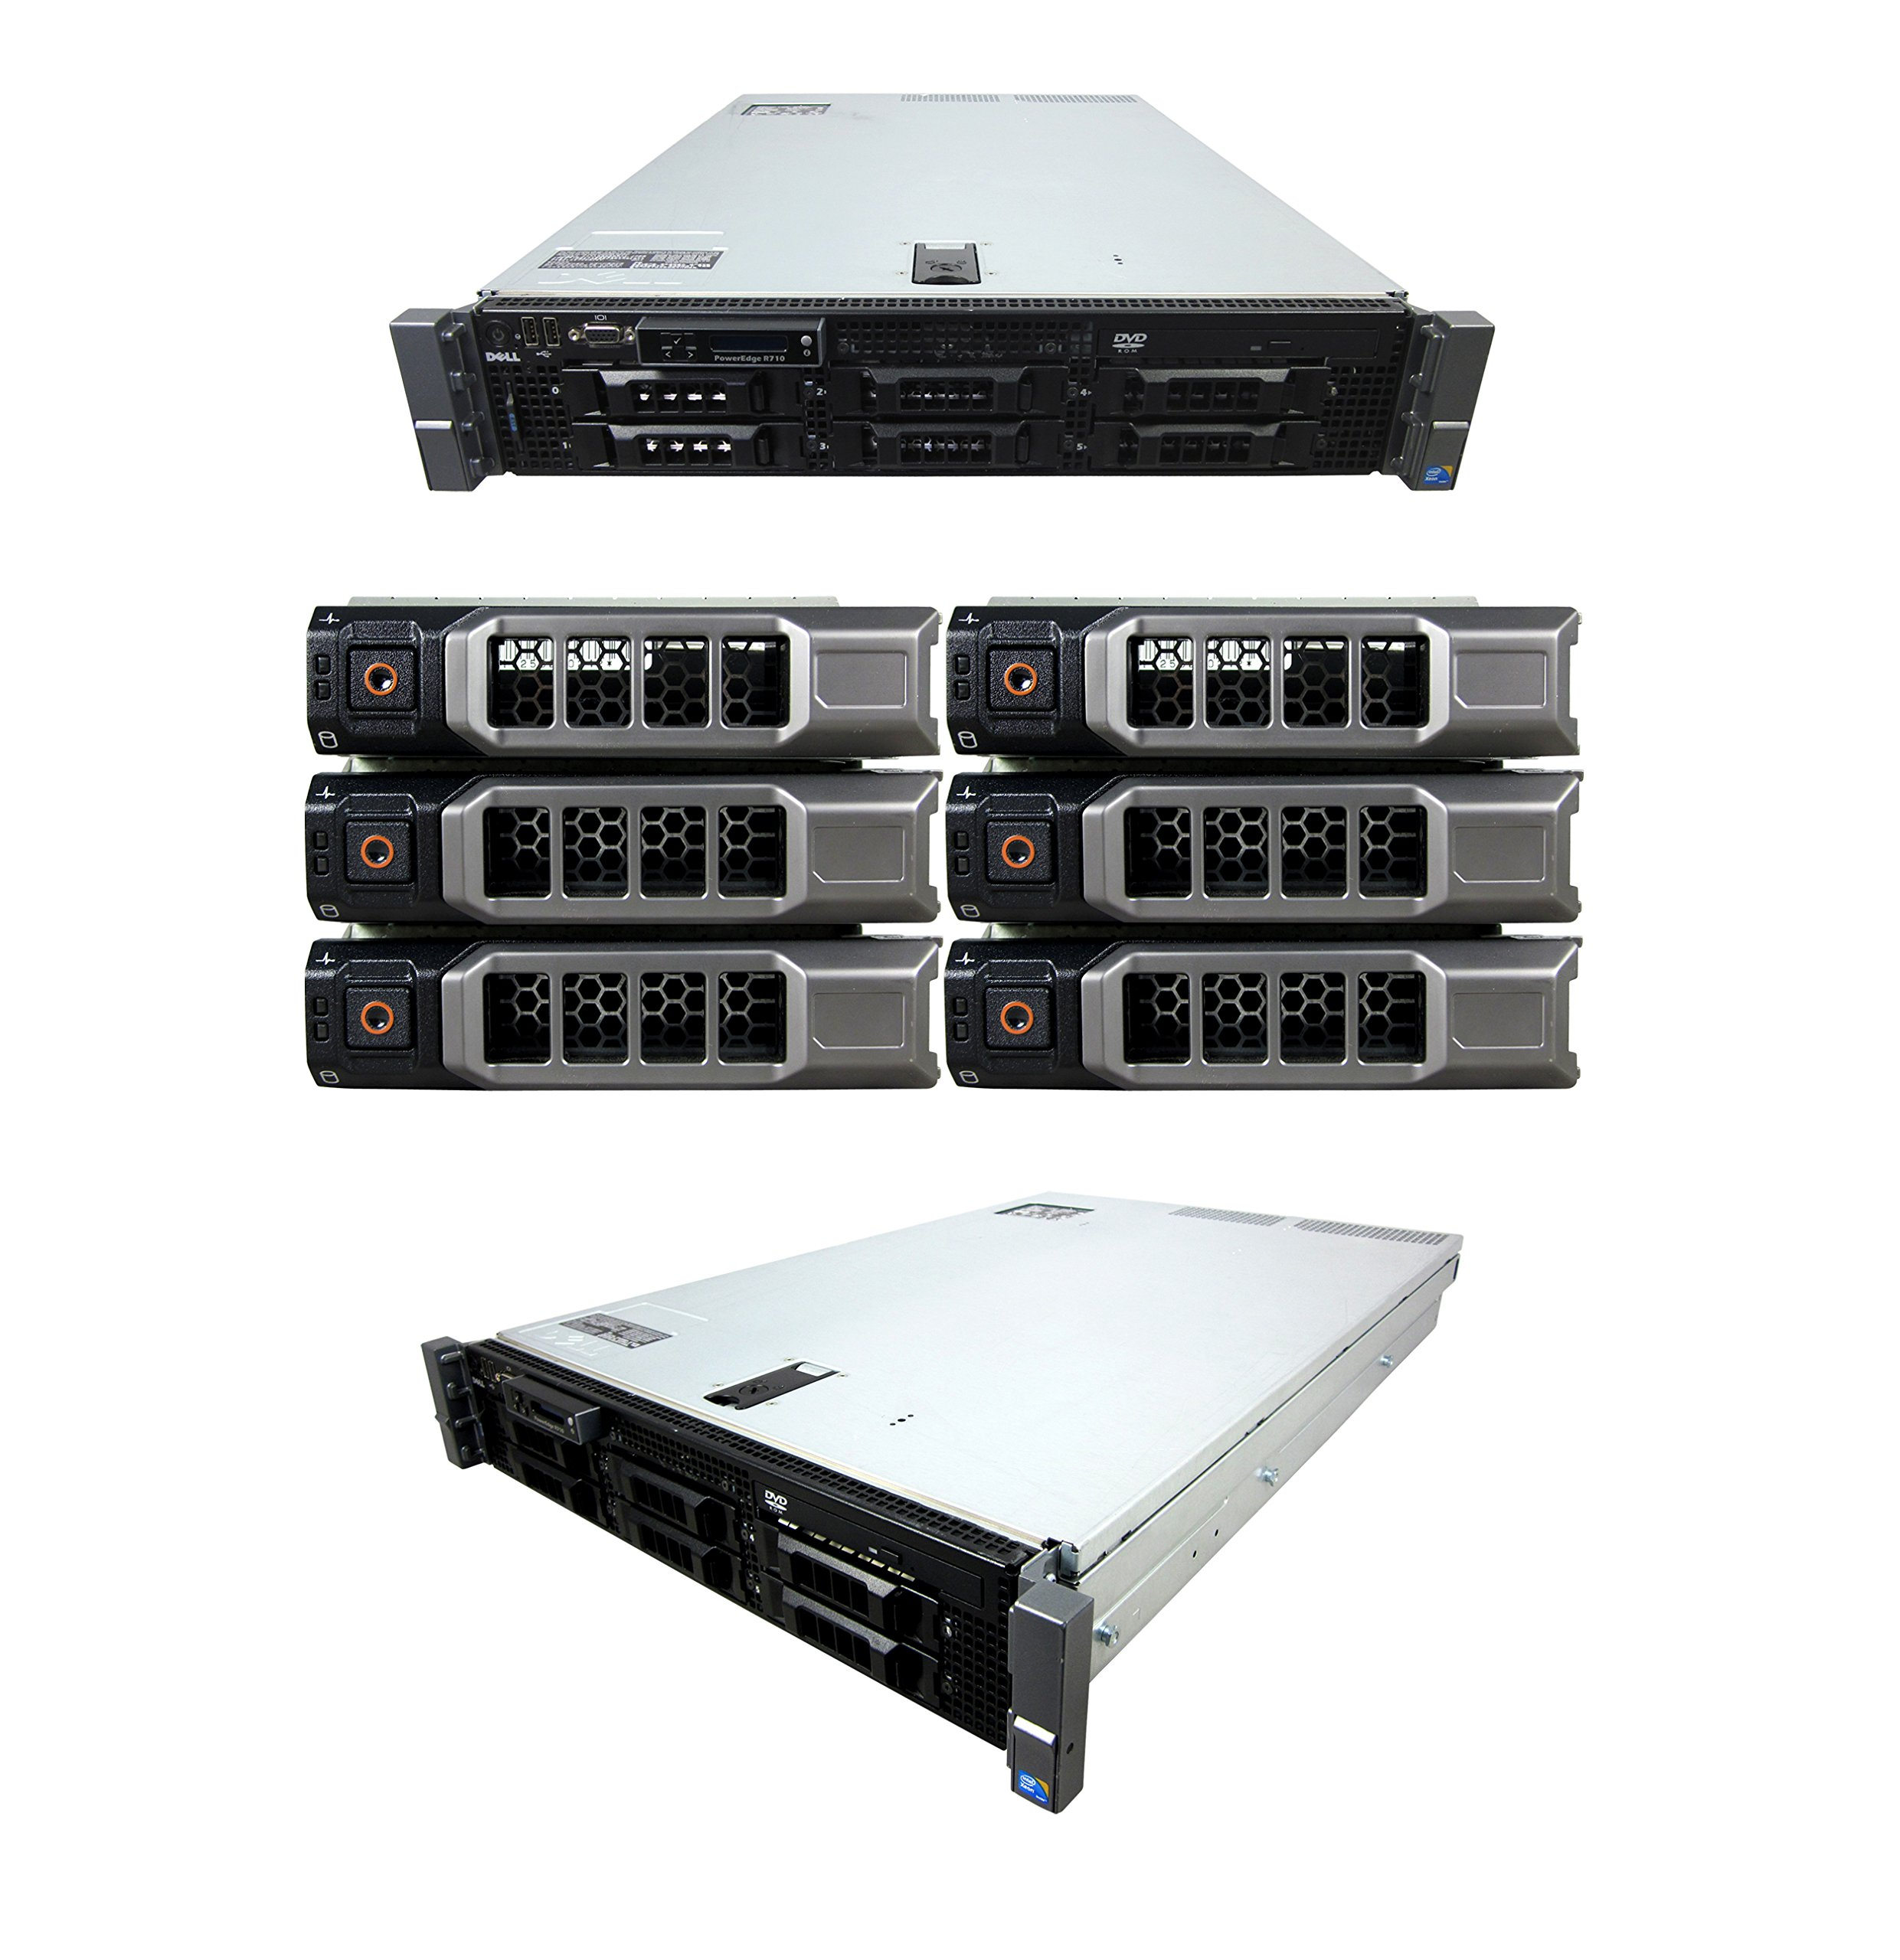 Lot of 3 High-End Virtualization Server 12-Core 128GB RAM 12TB RAID Dell PowerEdge R710 Rails+Bezel (Certified Refurbished)